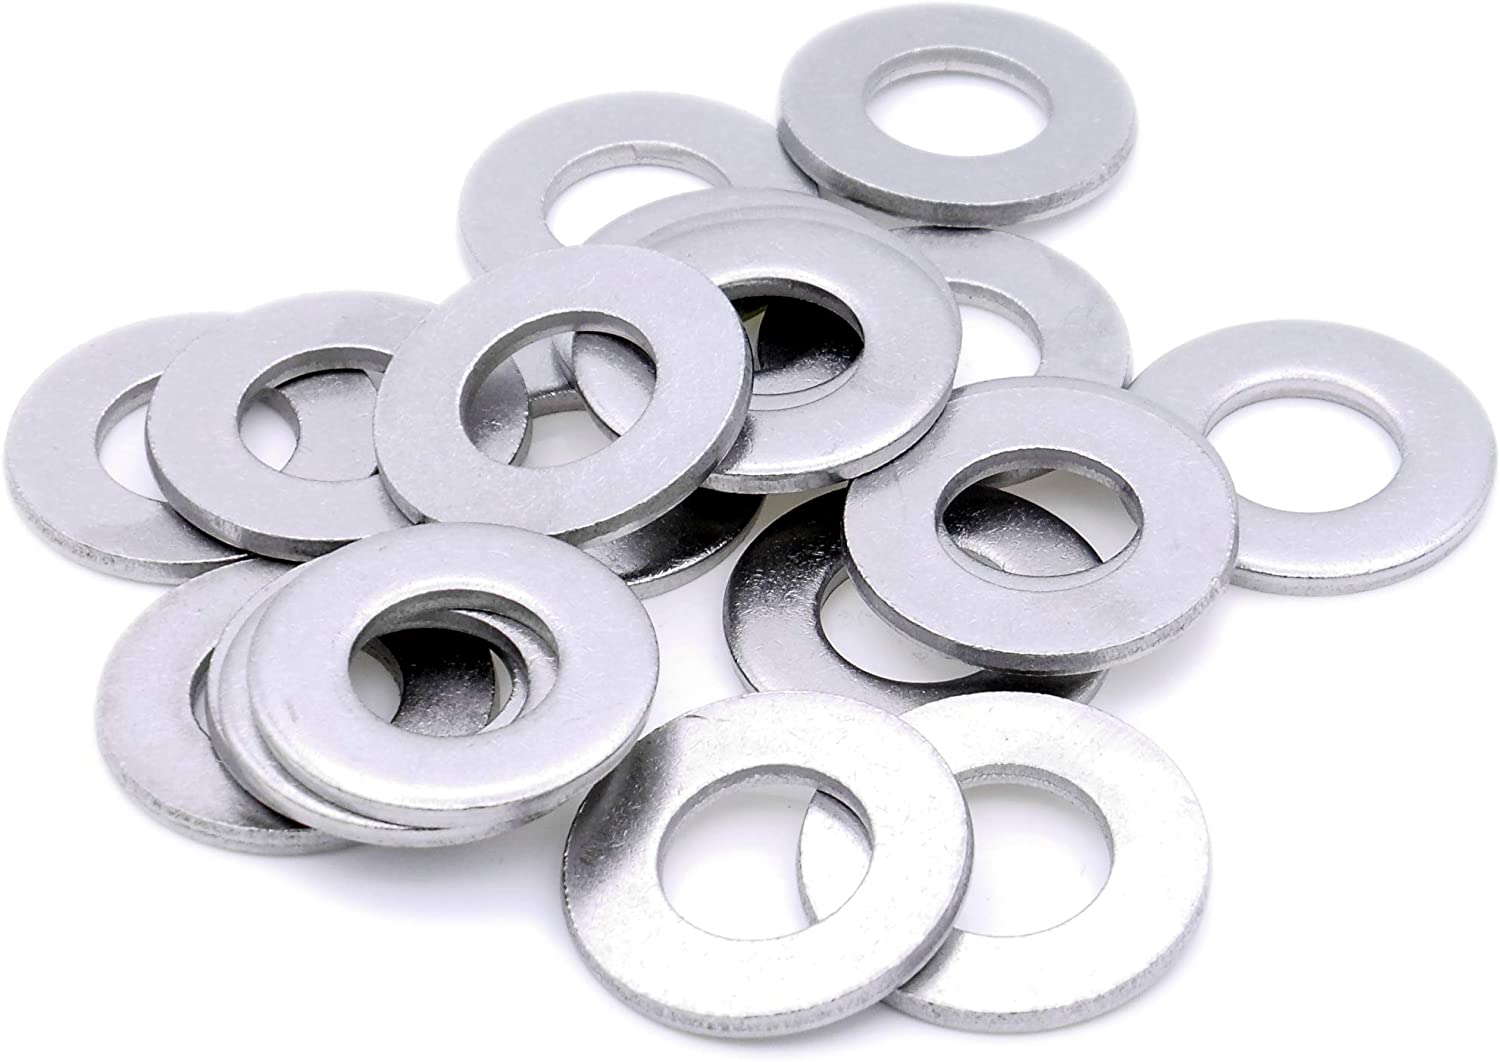 Form A Pack of 20 3mm M3 Flat Washer - Brass